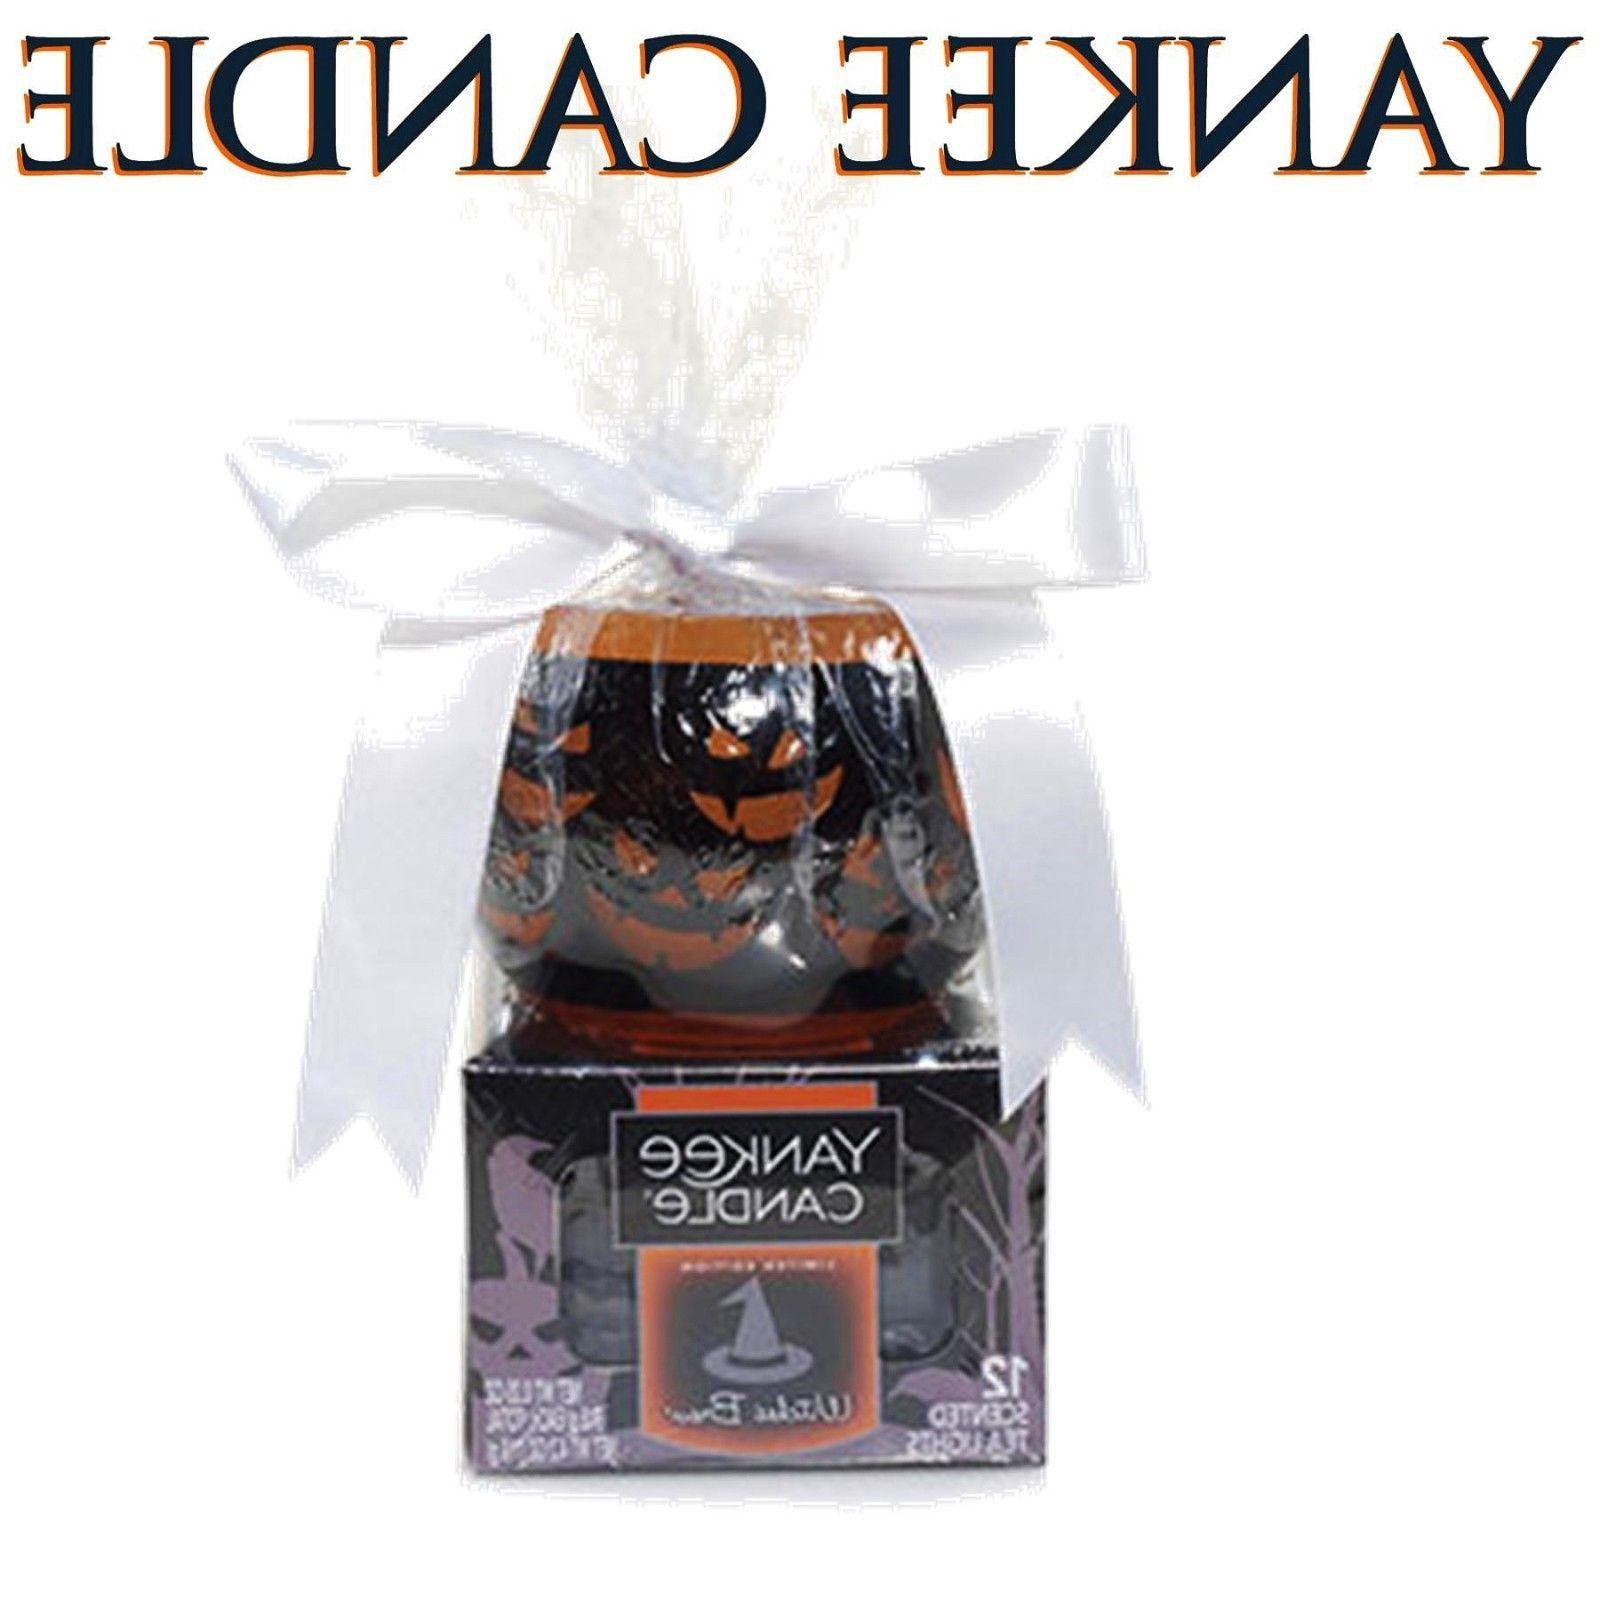 Yankee Candle ALL HALLOWS EVE TEA LIGHT HOLDER GIFT SET Witc